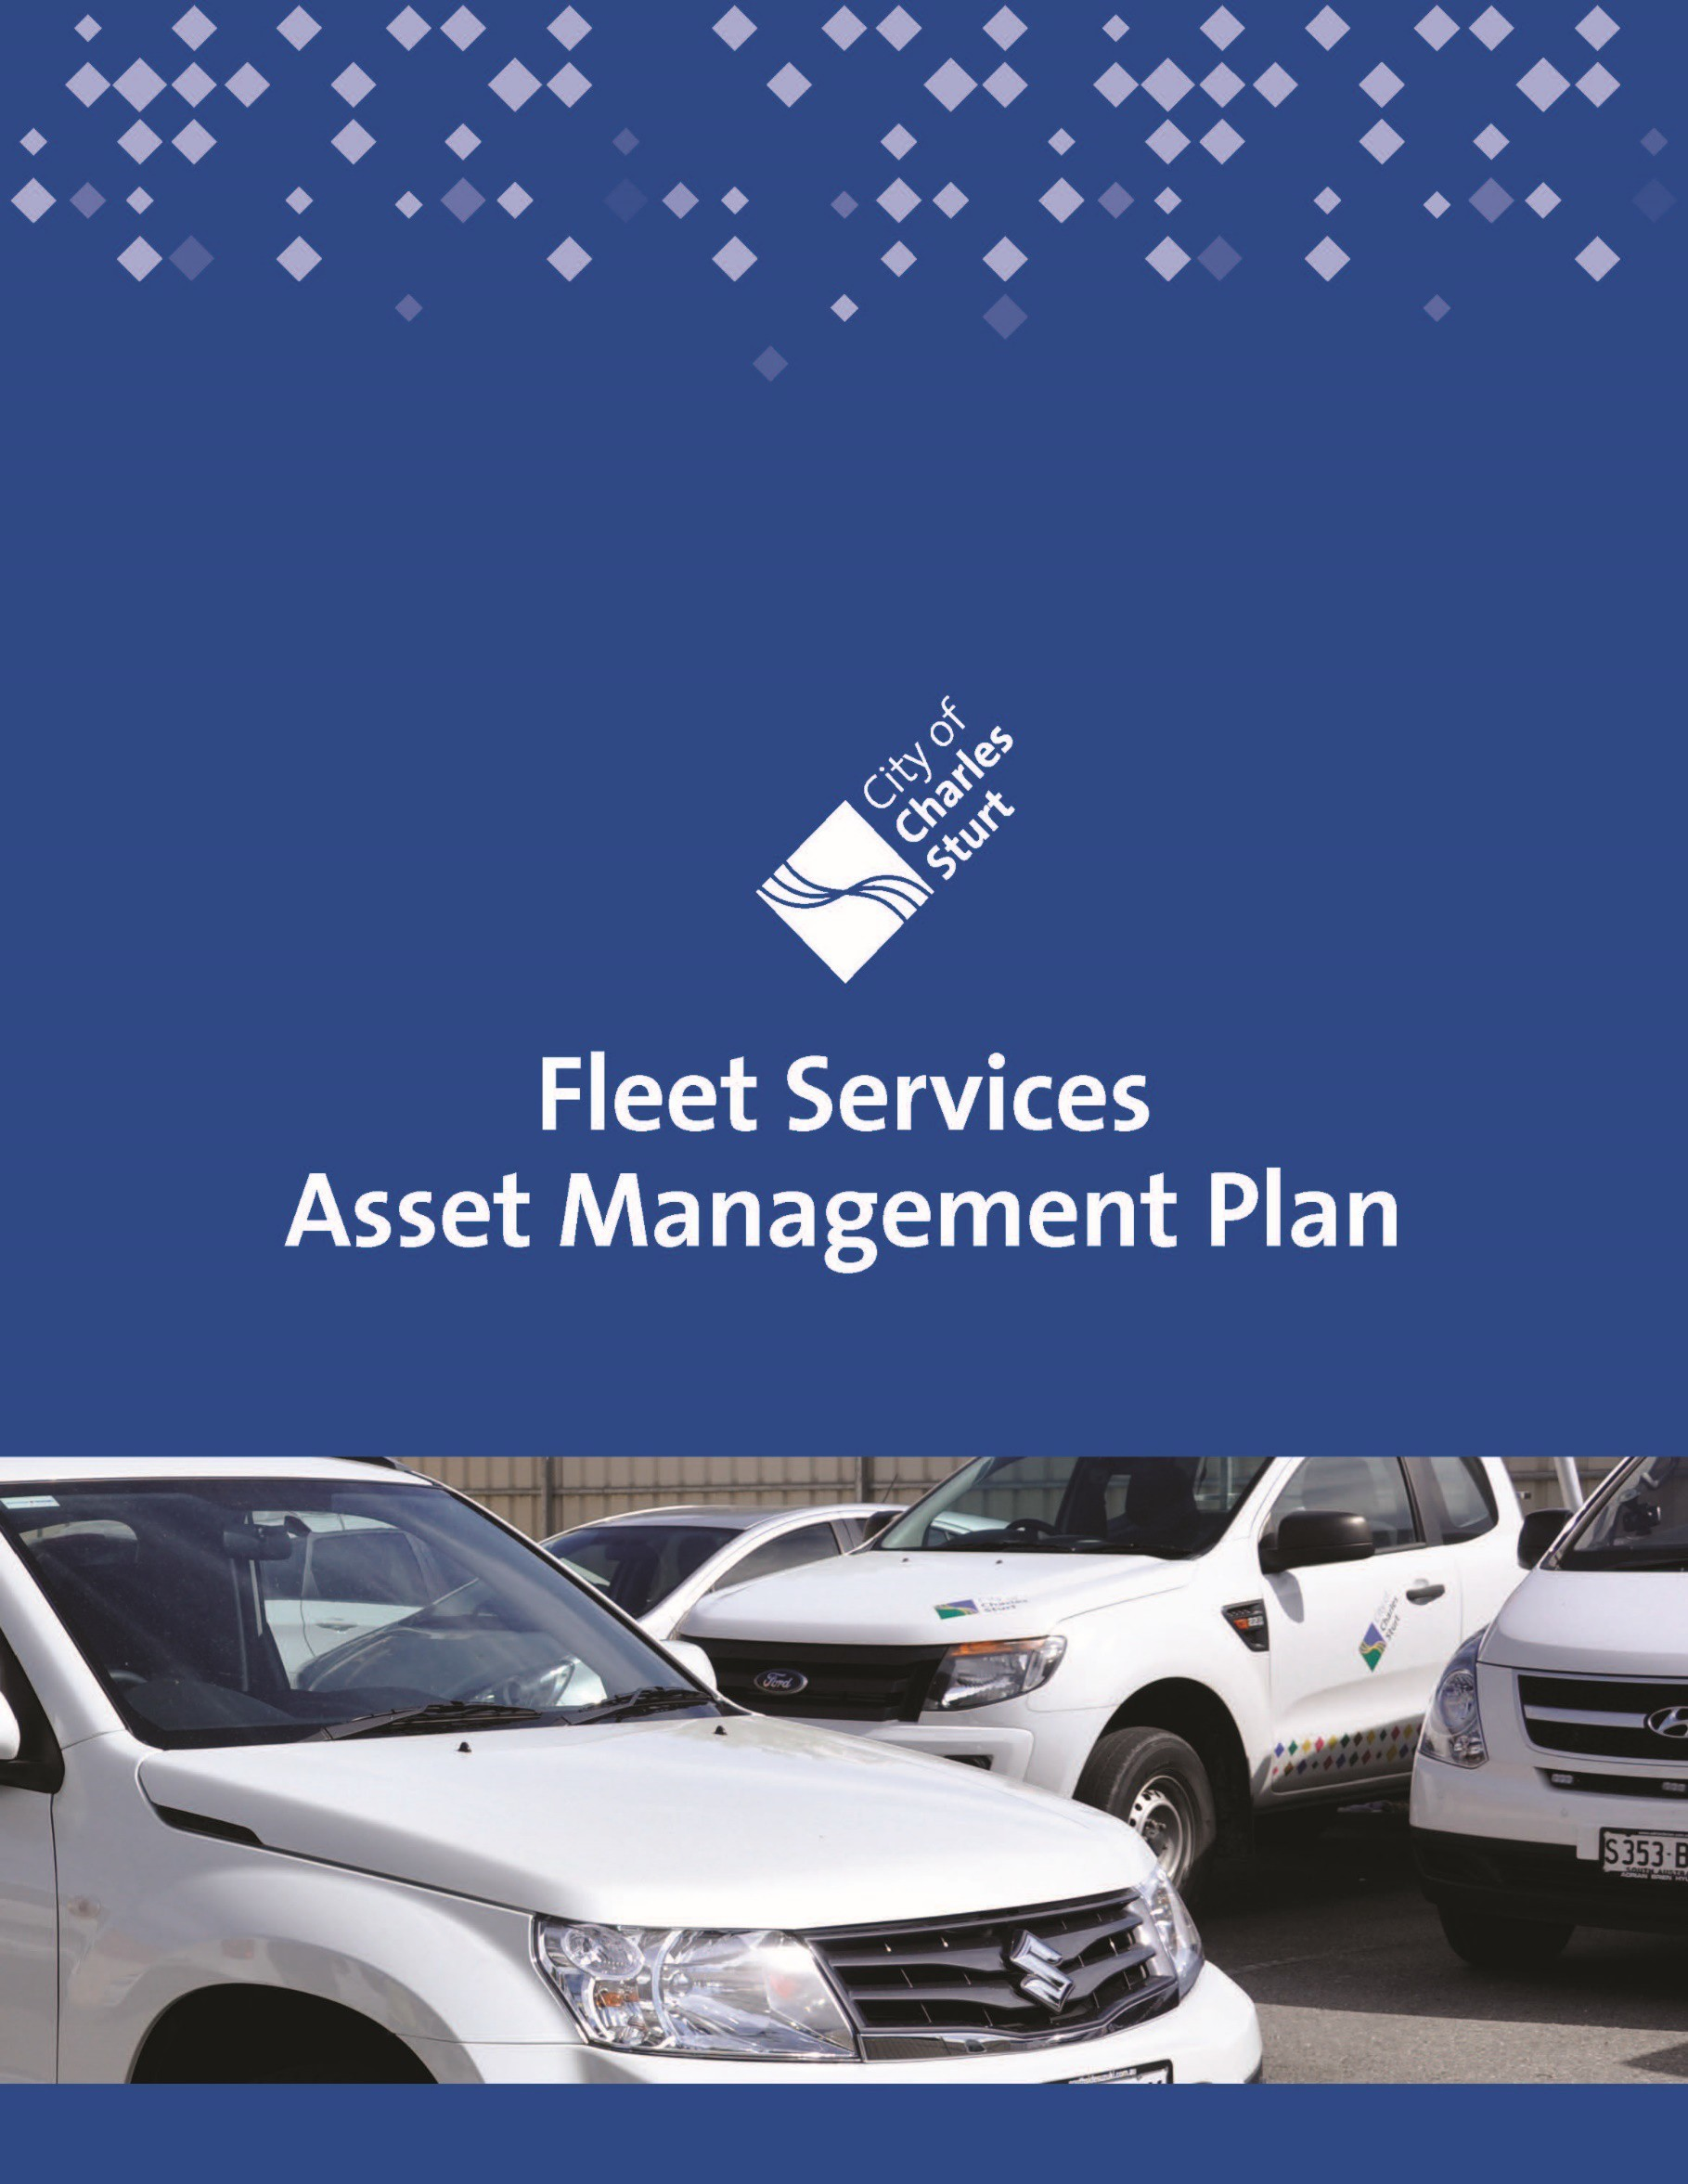 Fleet Services AMP